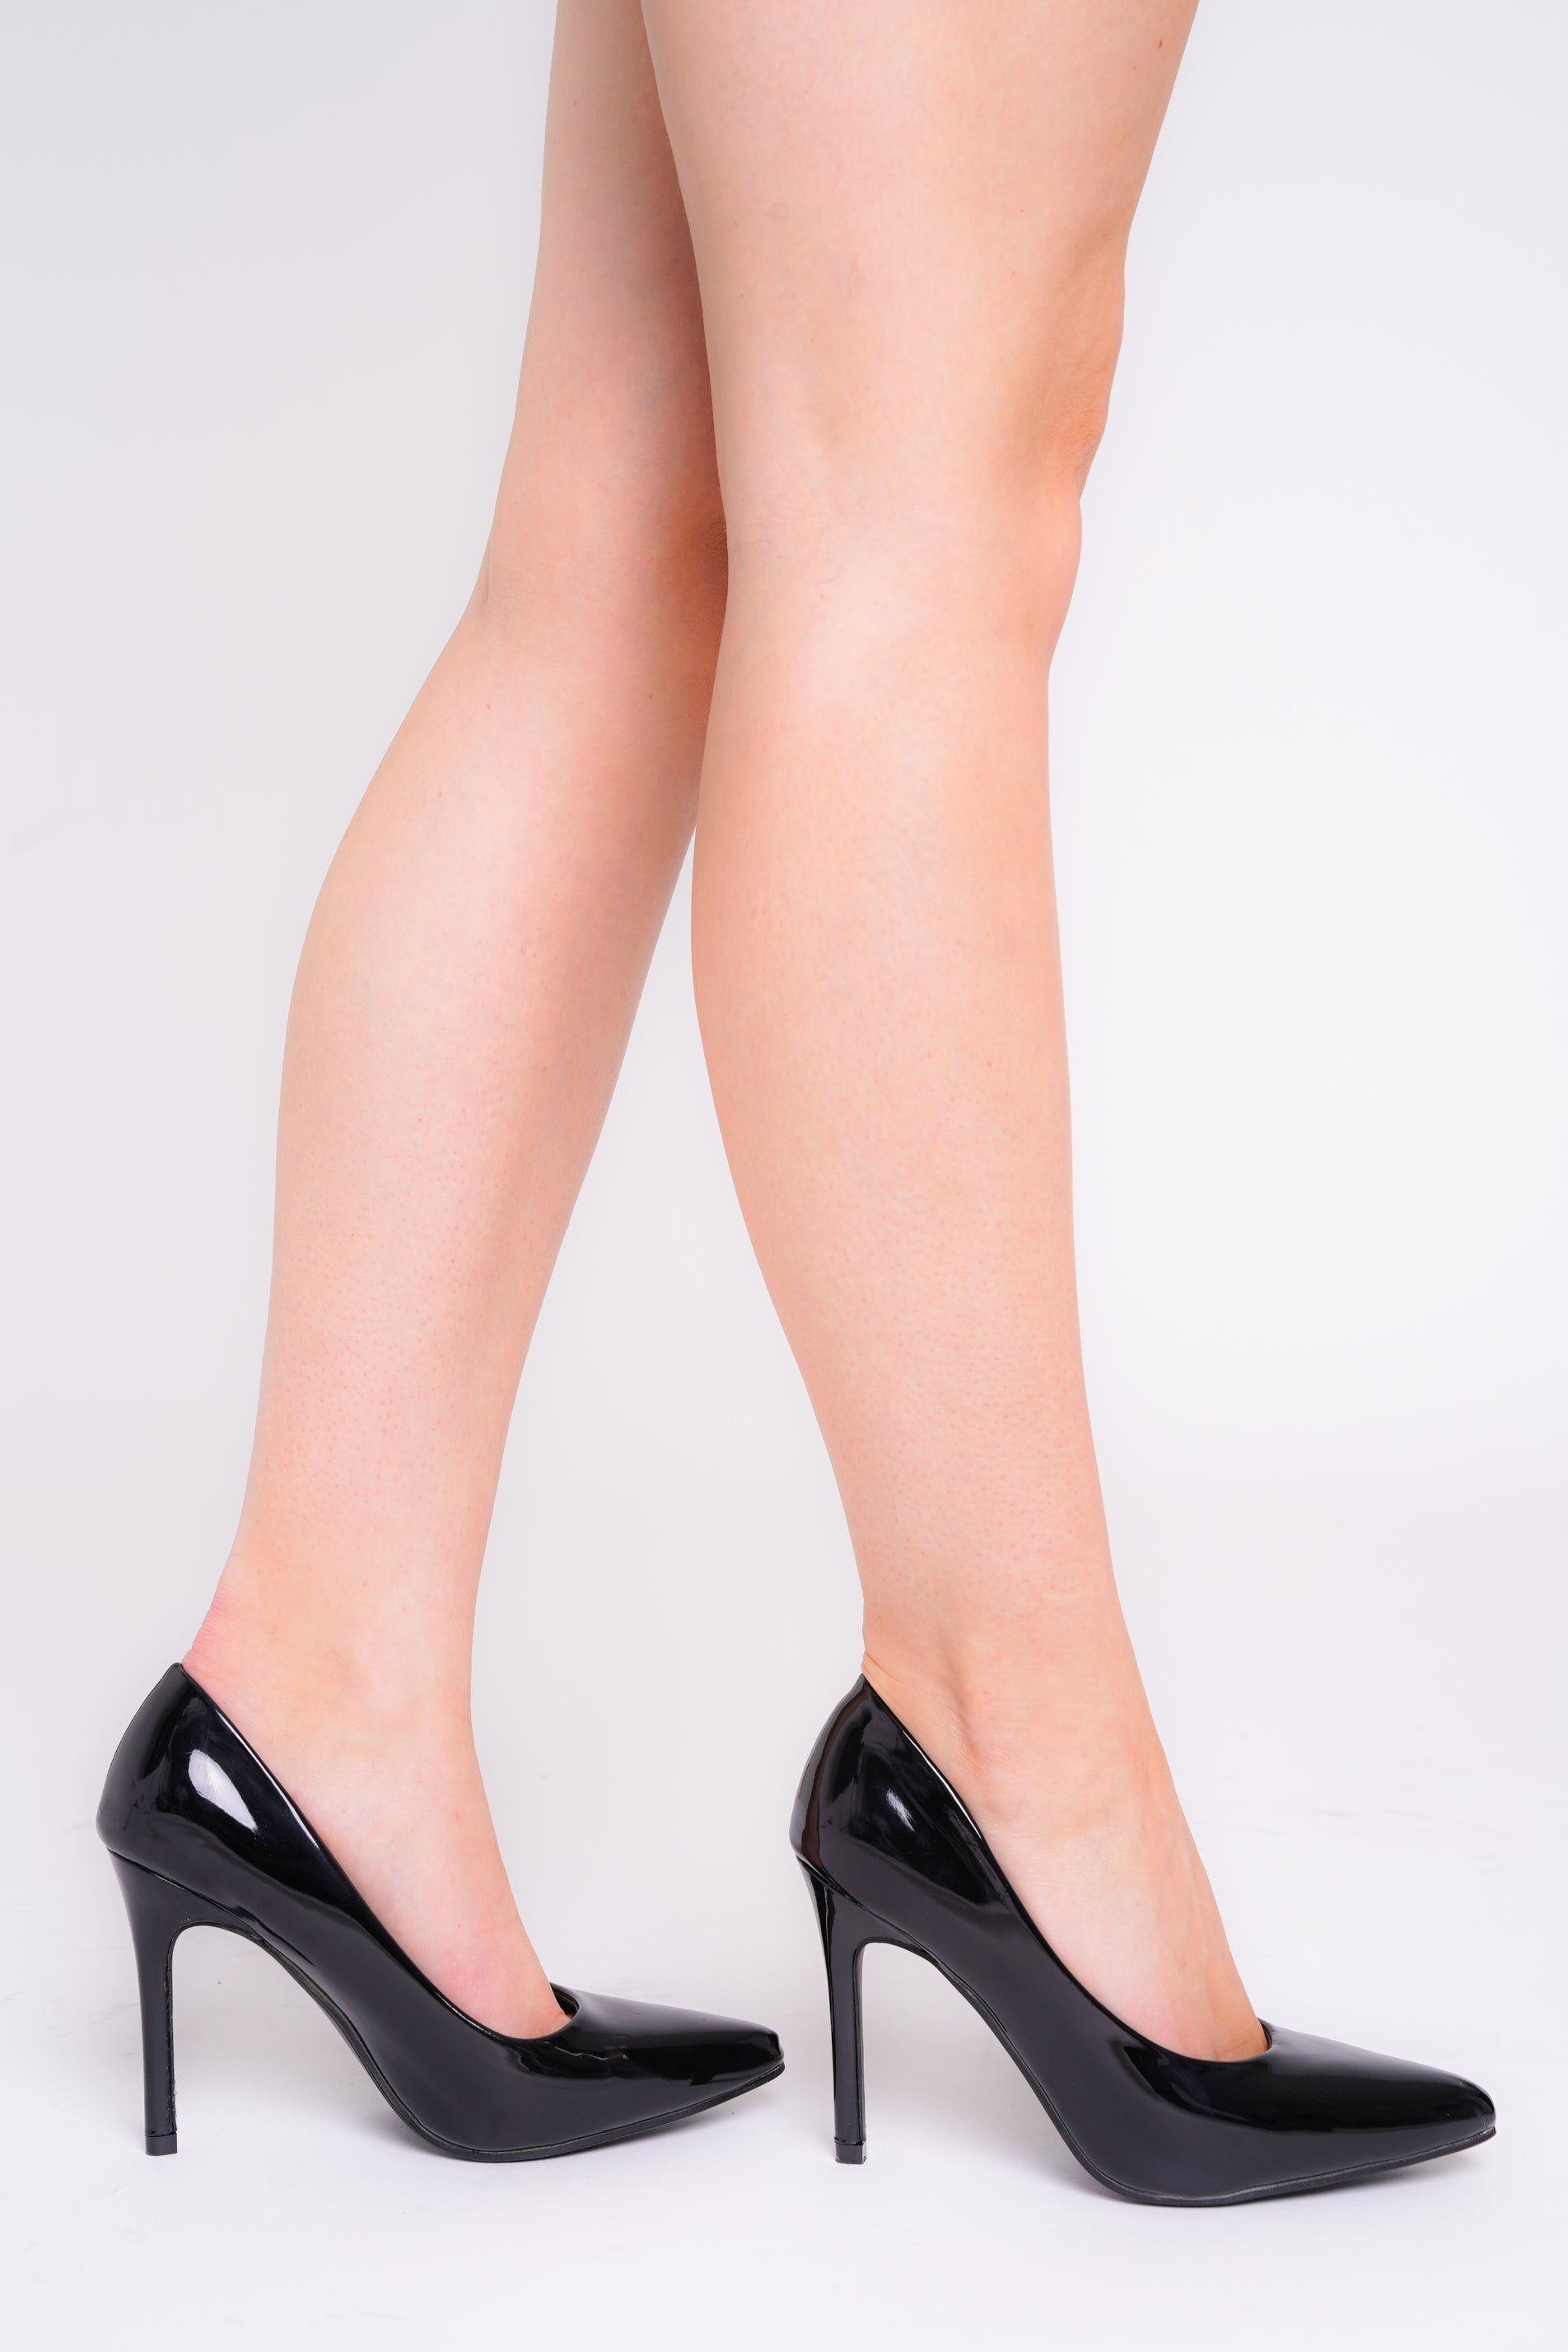 Amara Black Patent Pointed Toe Heels